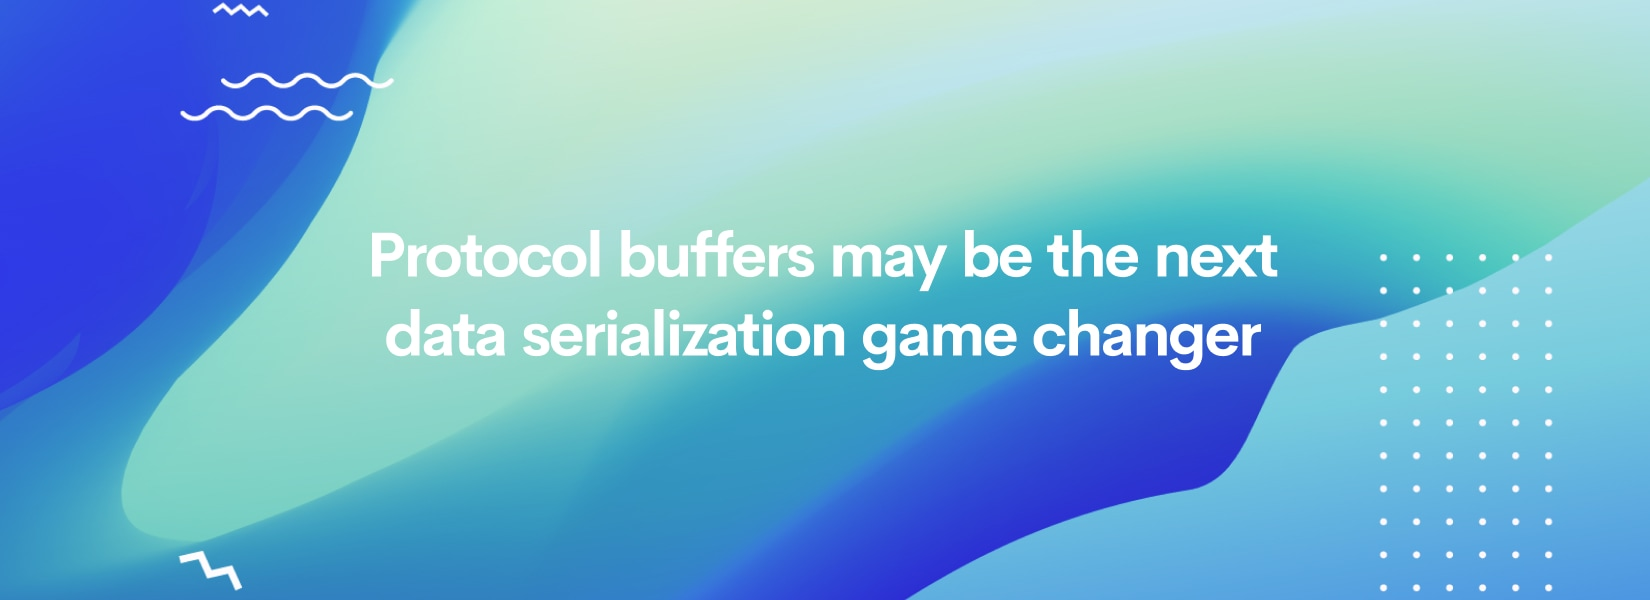 Protocol buffers may be the next data serialization game changer